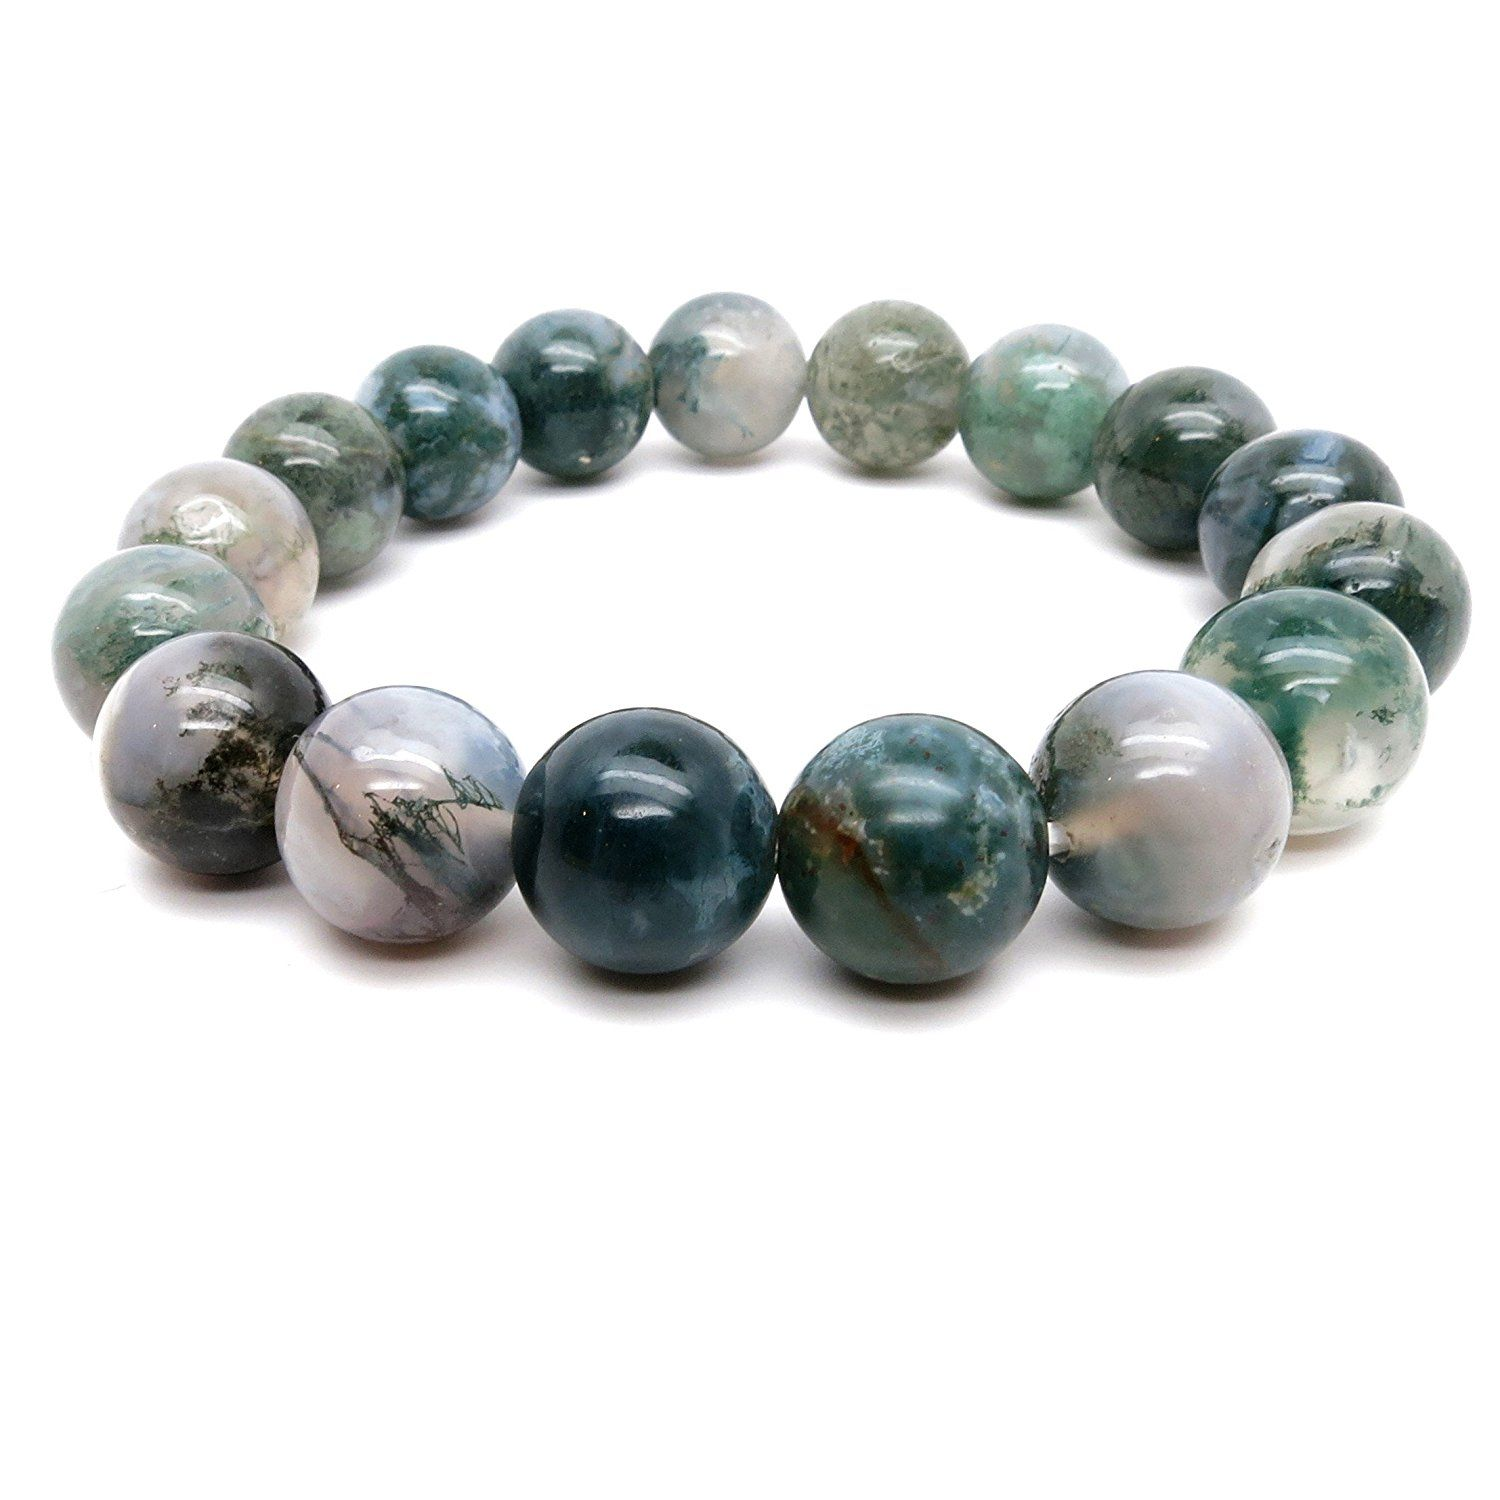 aromatherapy chakra diffuser natural beads stone product with lava bracelet green